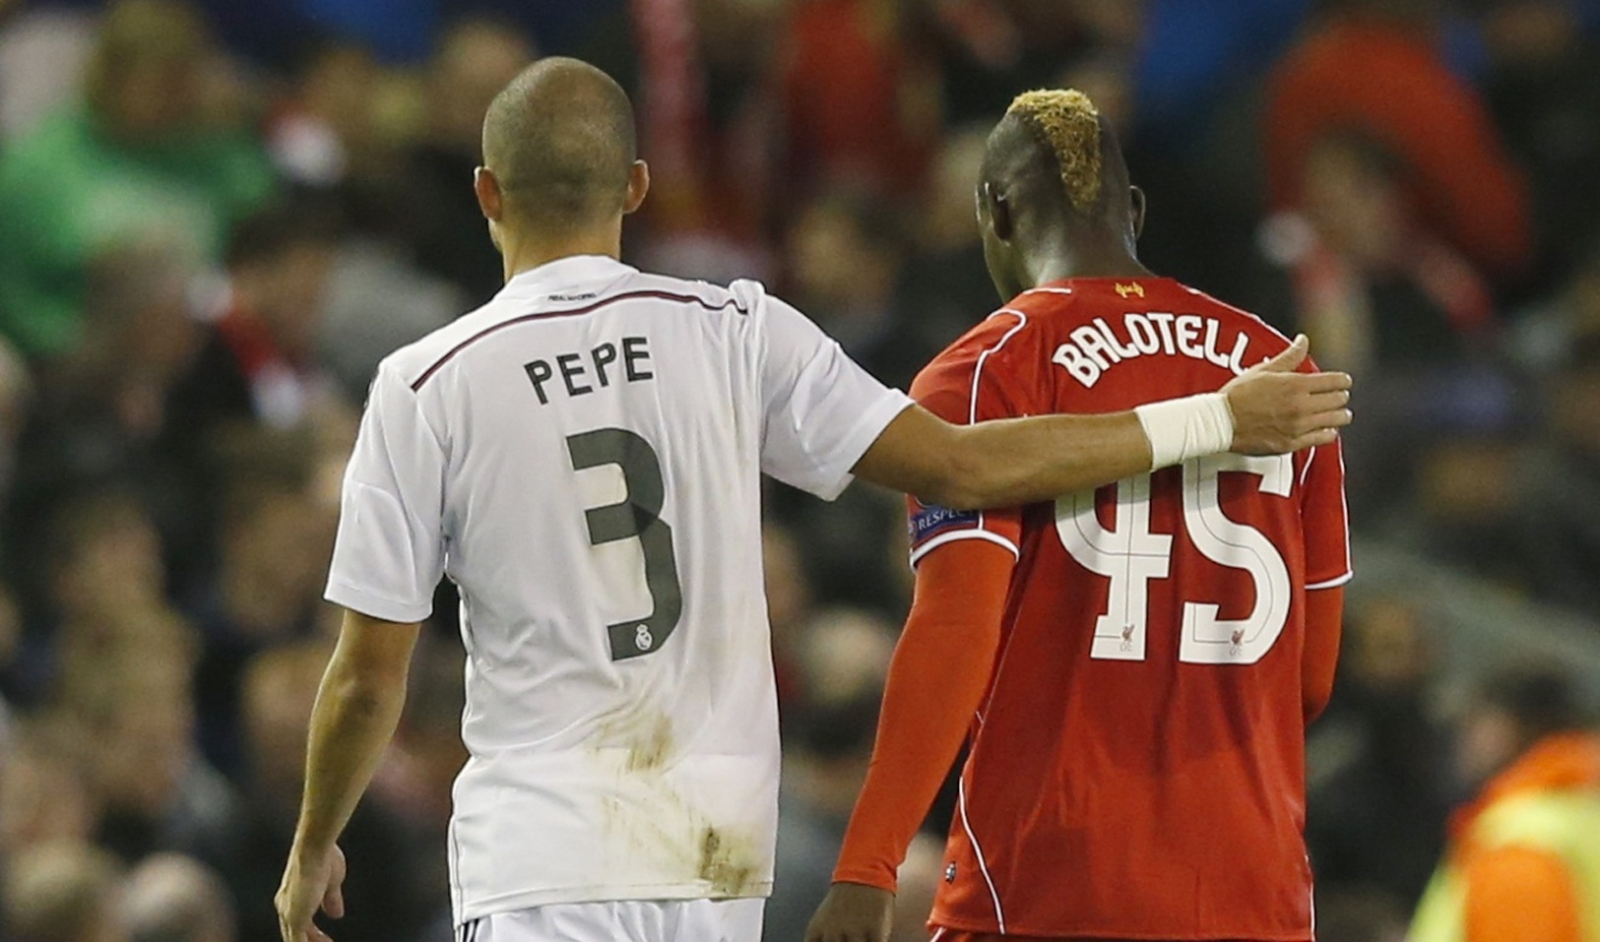 Pepe and Mario Balotelli